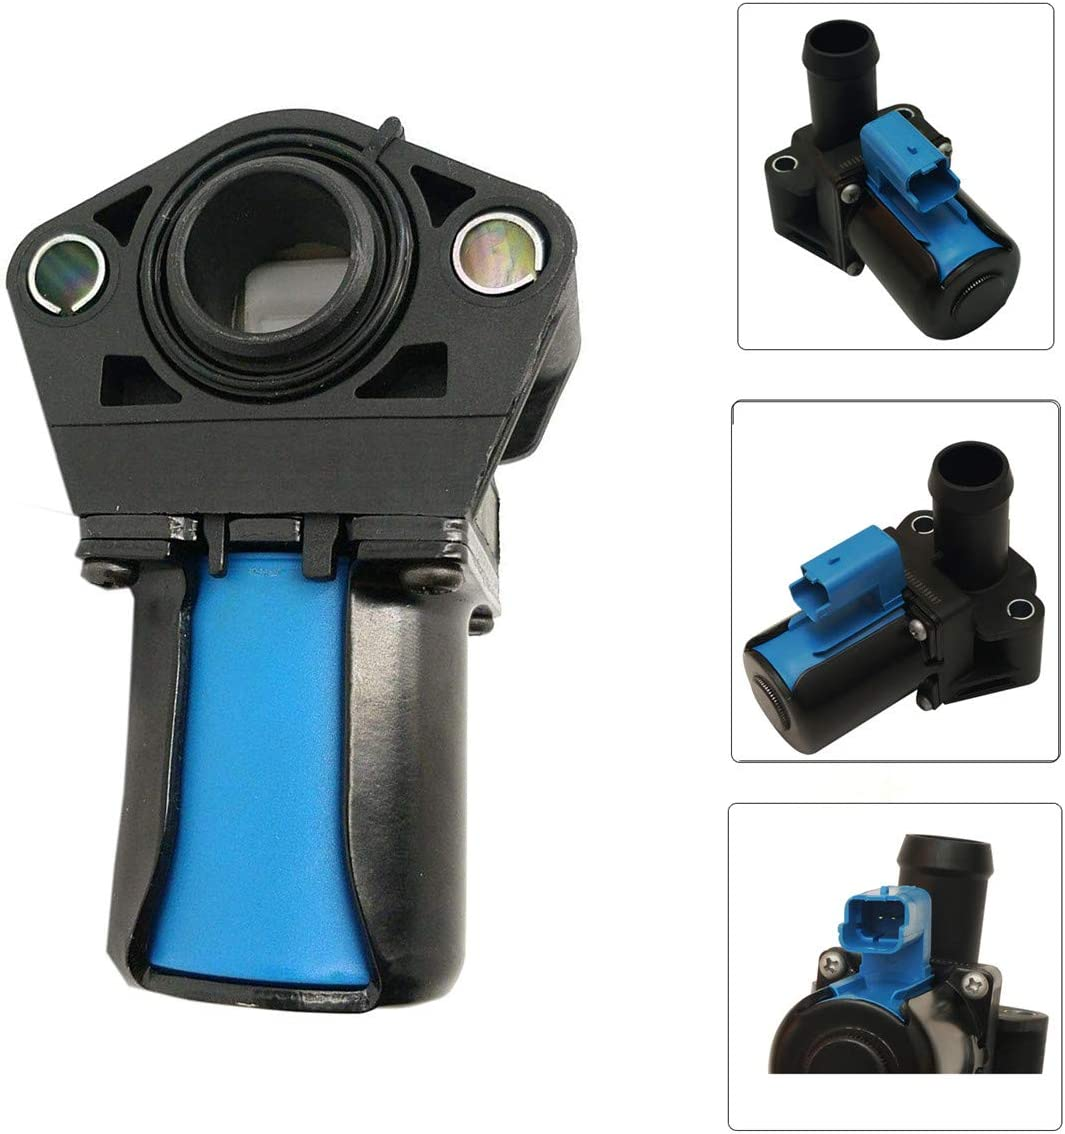 HVAC Limited Special Price Heater Control Valve Engine Coolant BM5Z-18495 Bypass Ranking TOP10